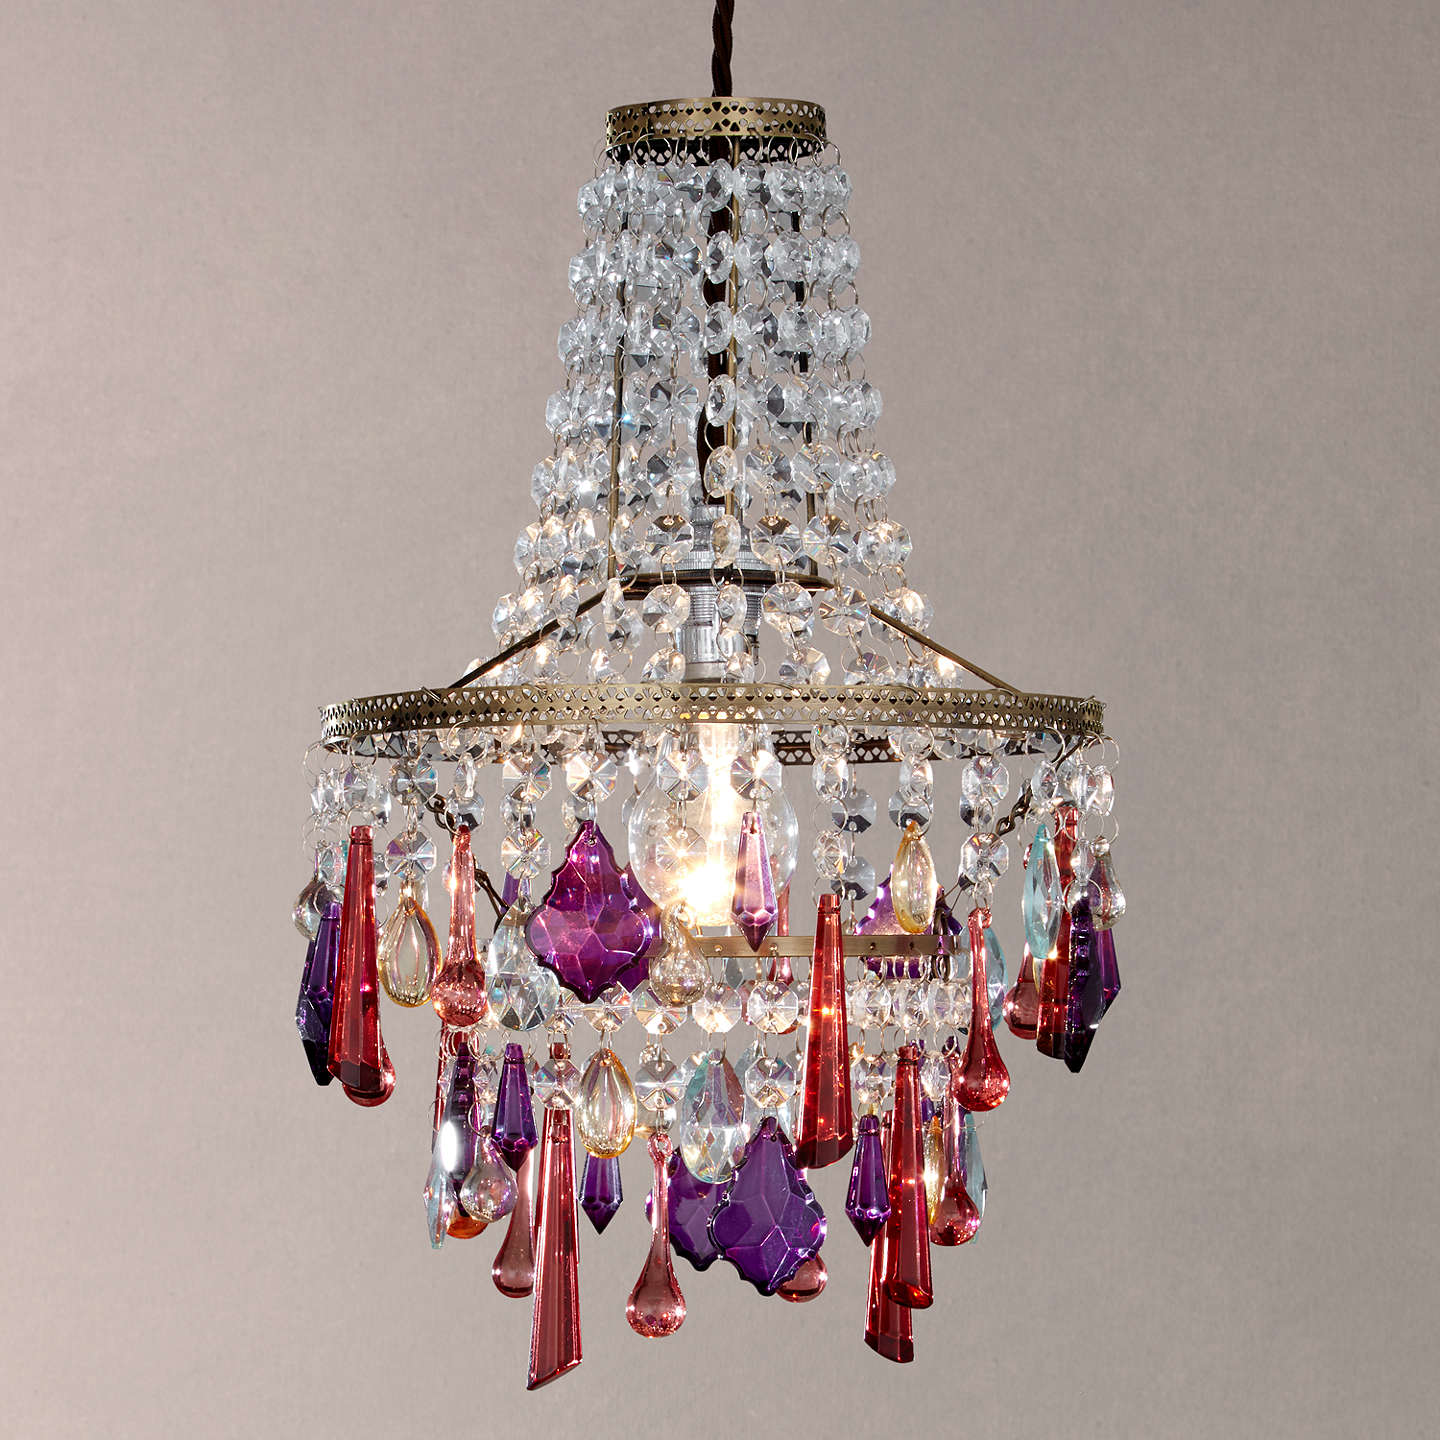 John lewis christina easy to fit small crystal ceiling light at john buyjohn lewis christina easy to fit small crystal ceiling light multi online at arubaitofo Choice Image